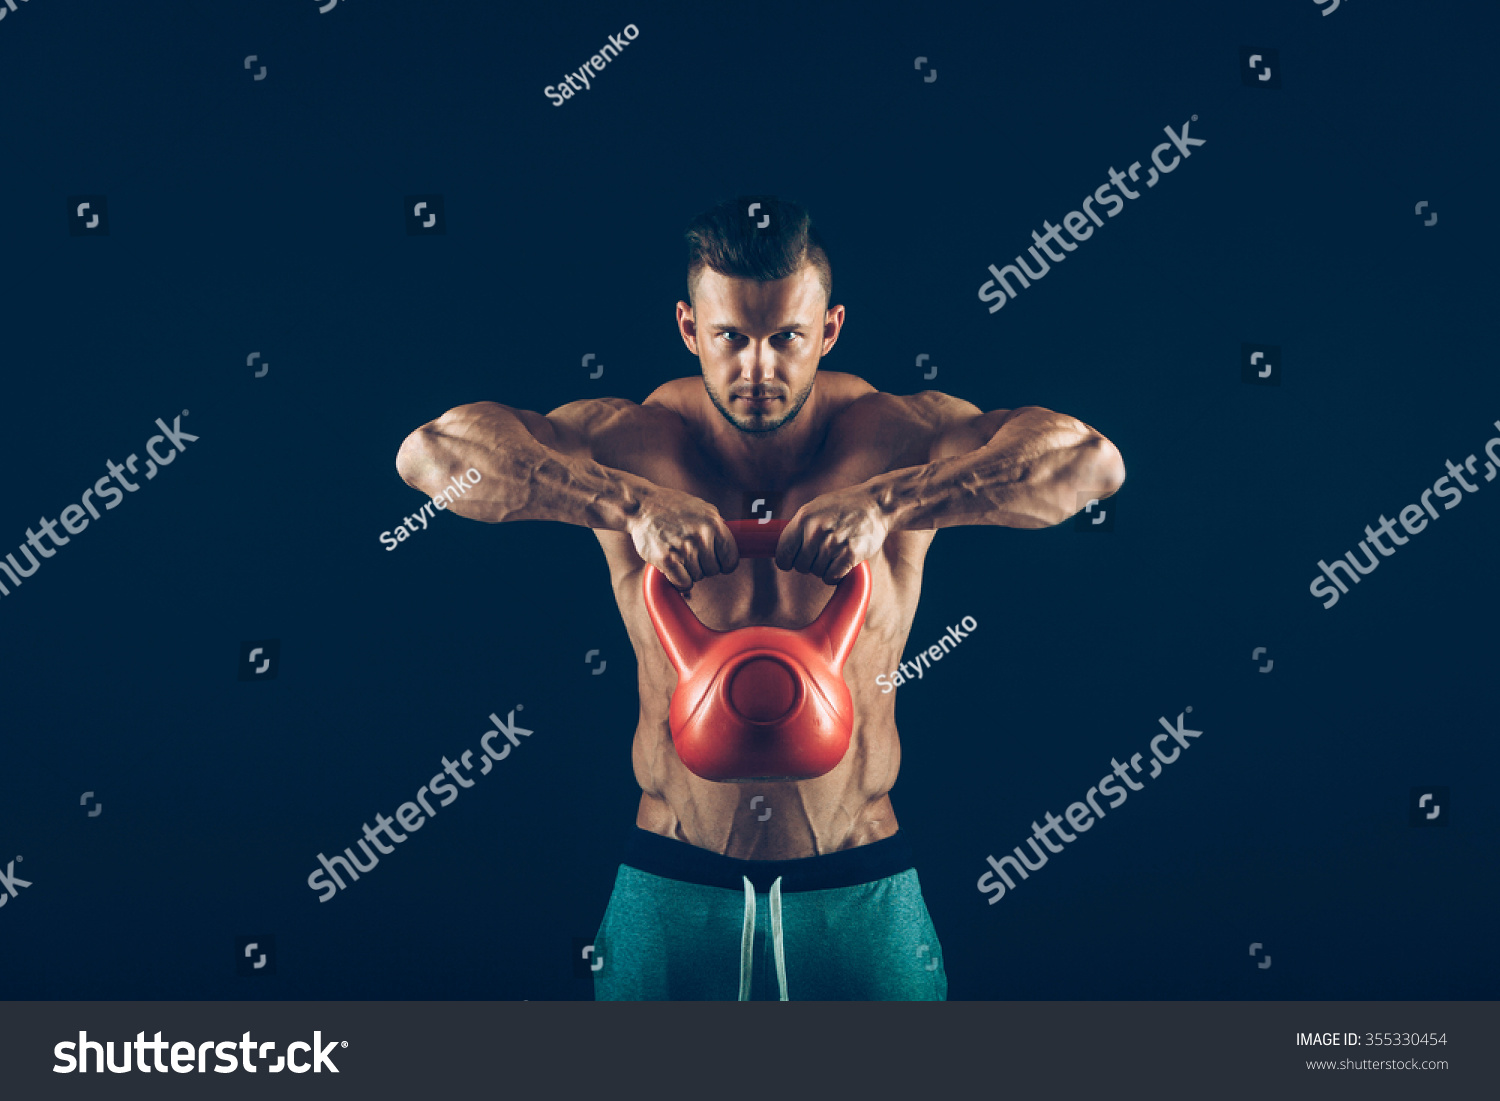 Fitness man doing a weight training by lifting a heavy kettlebell